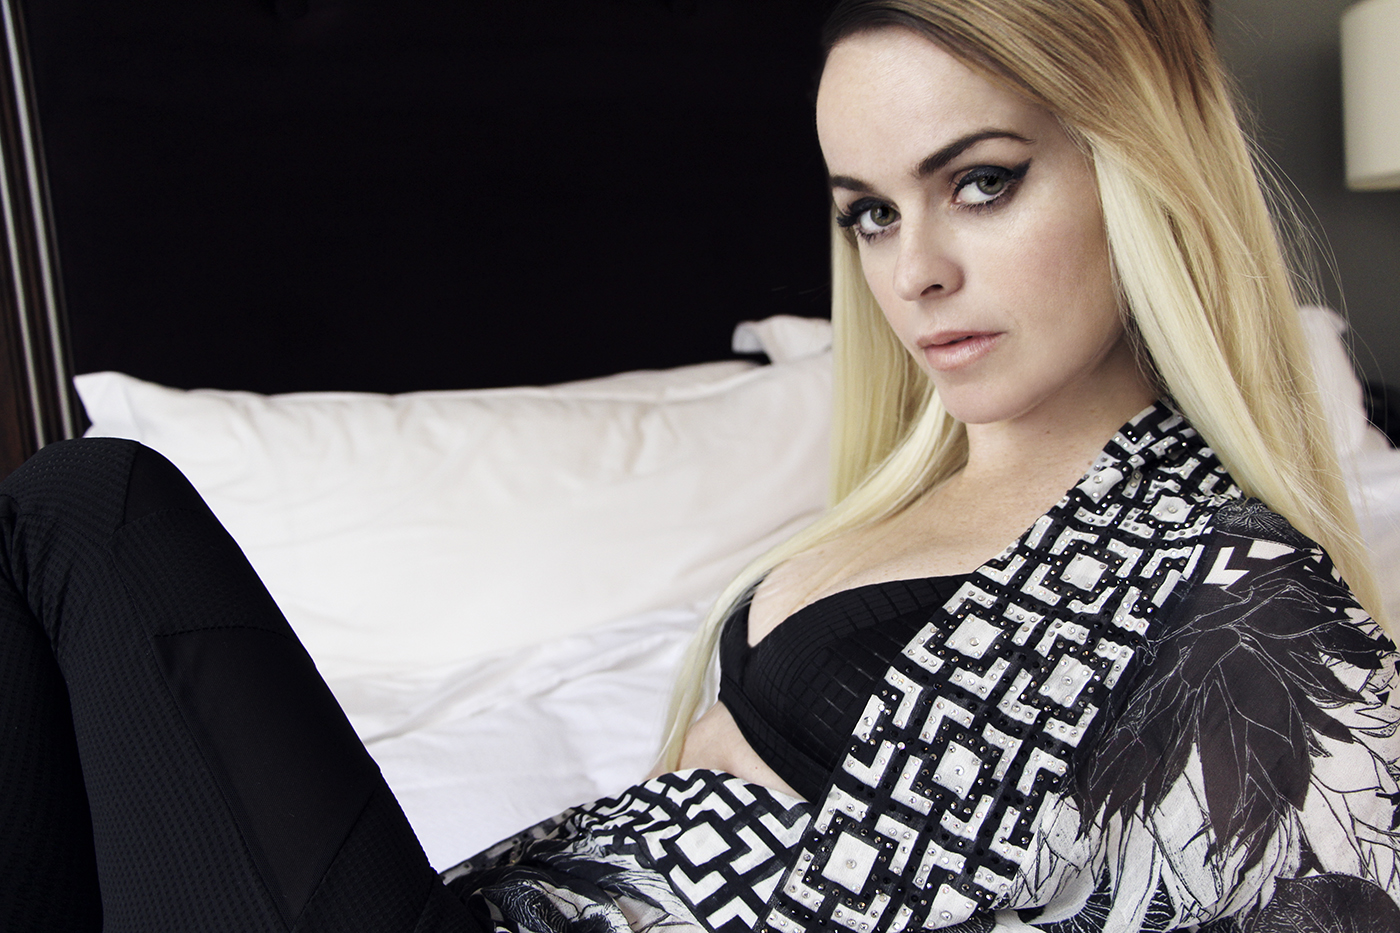 Watch Taryn Manning video